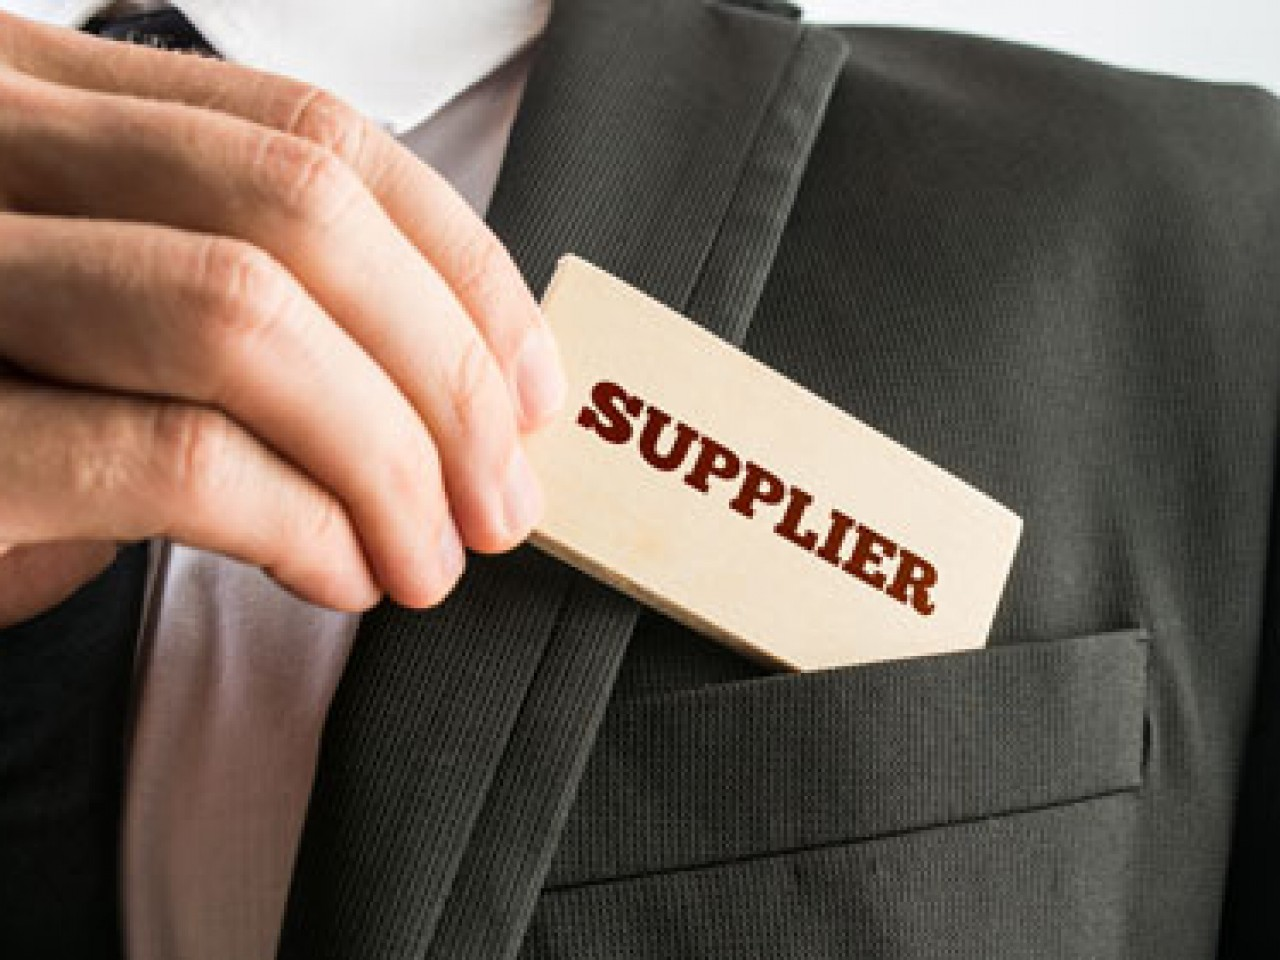 Are You a Supplier?